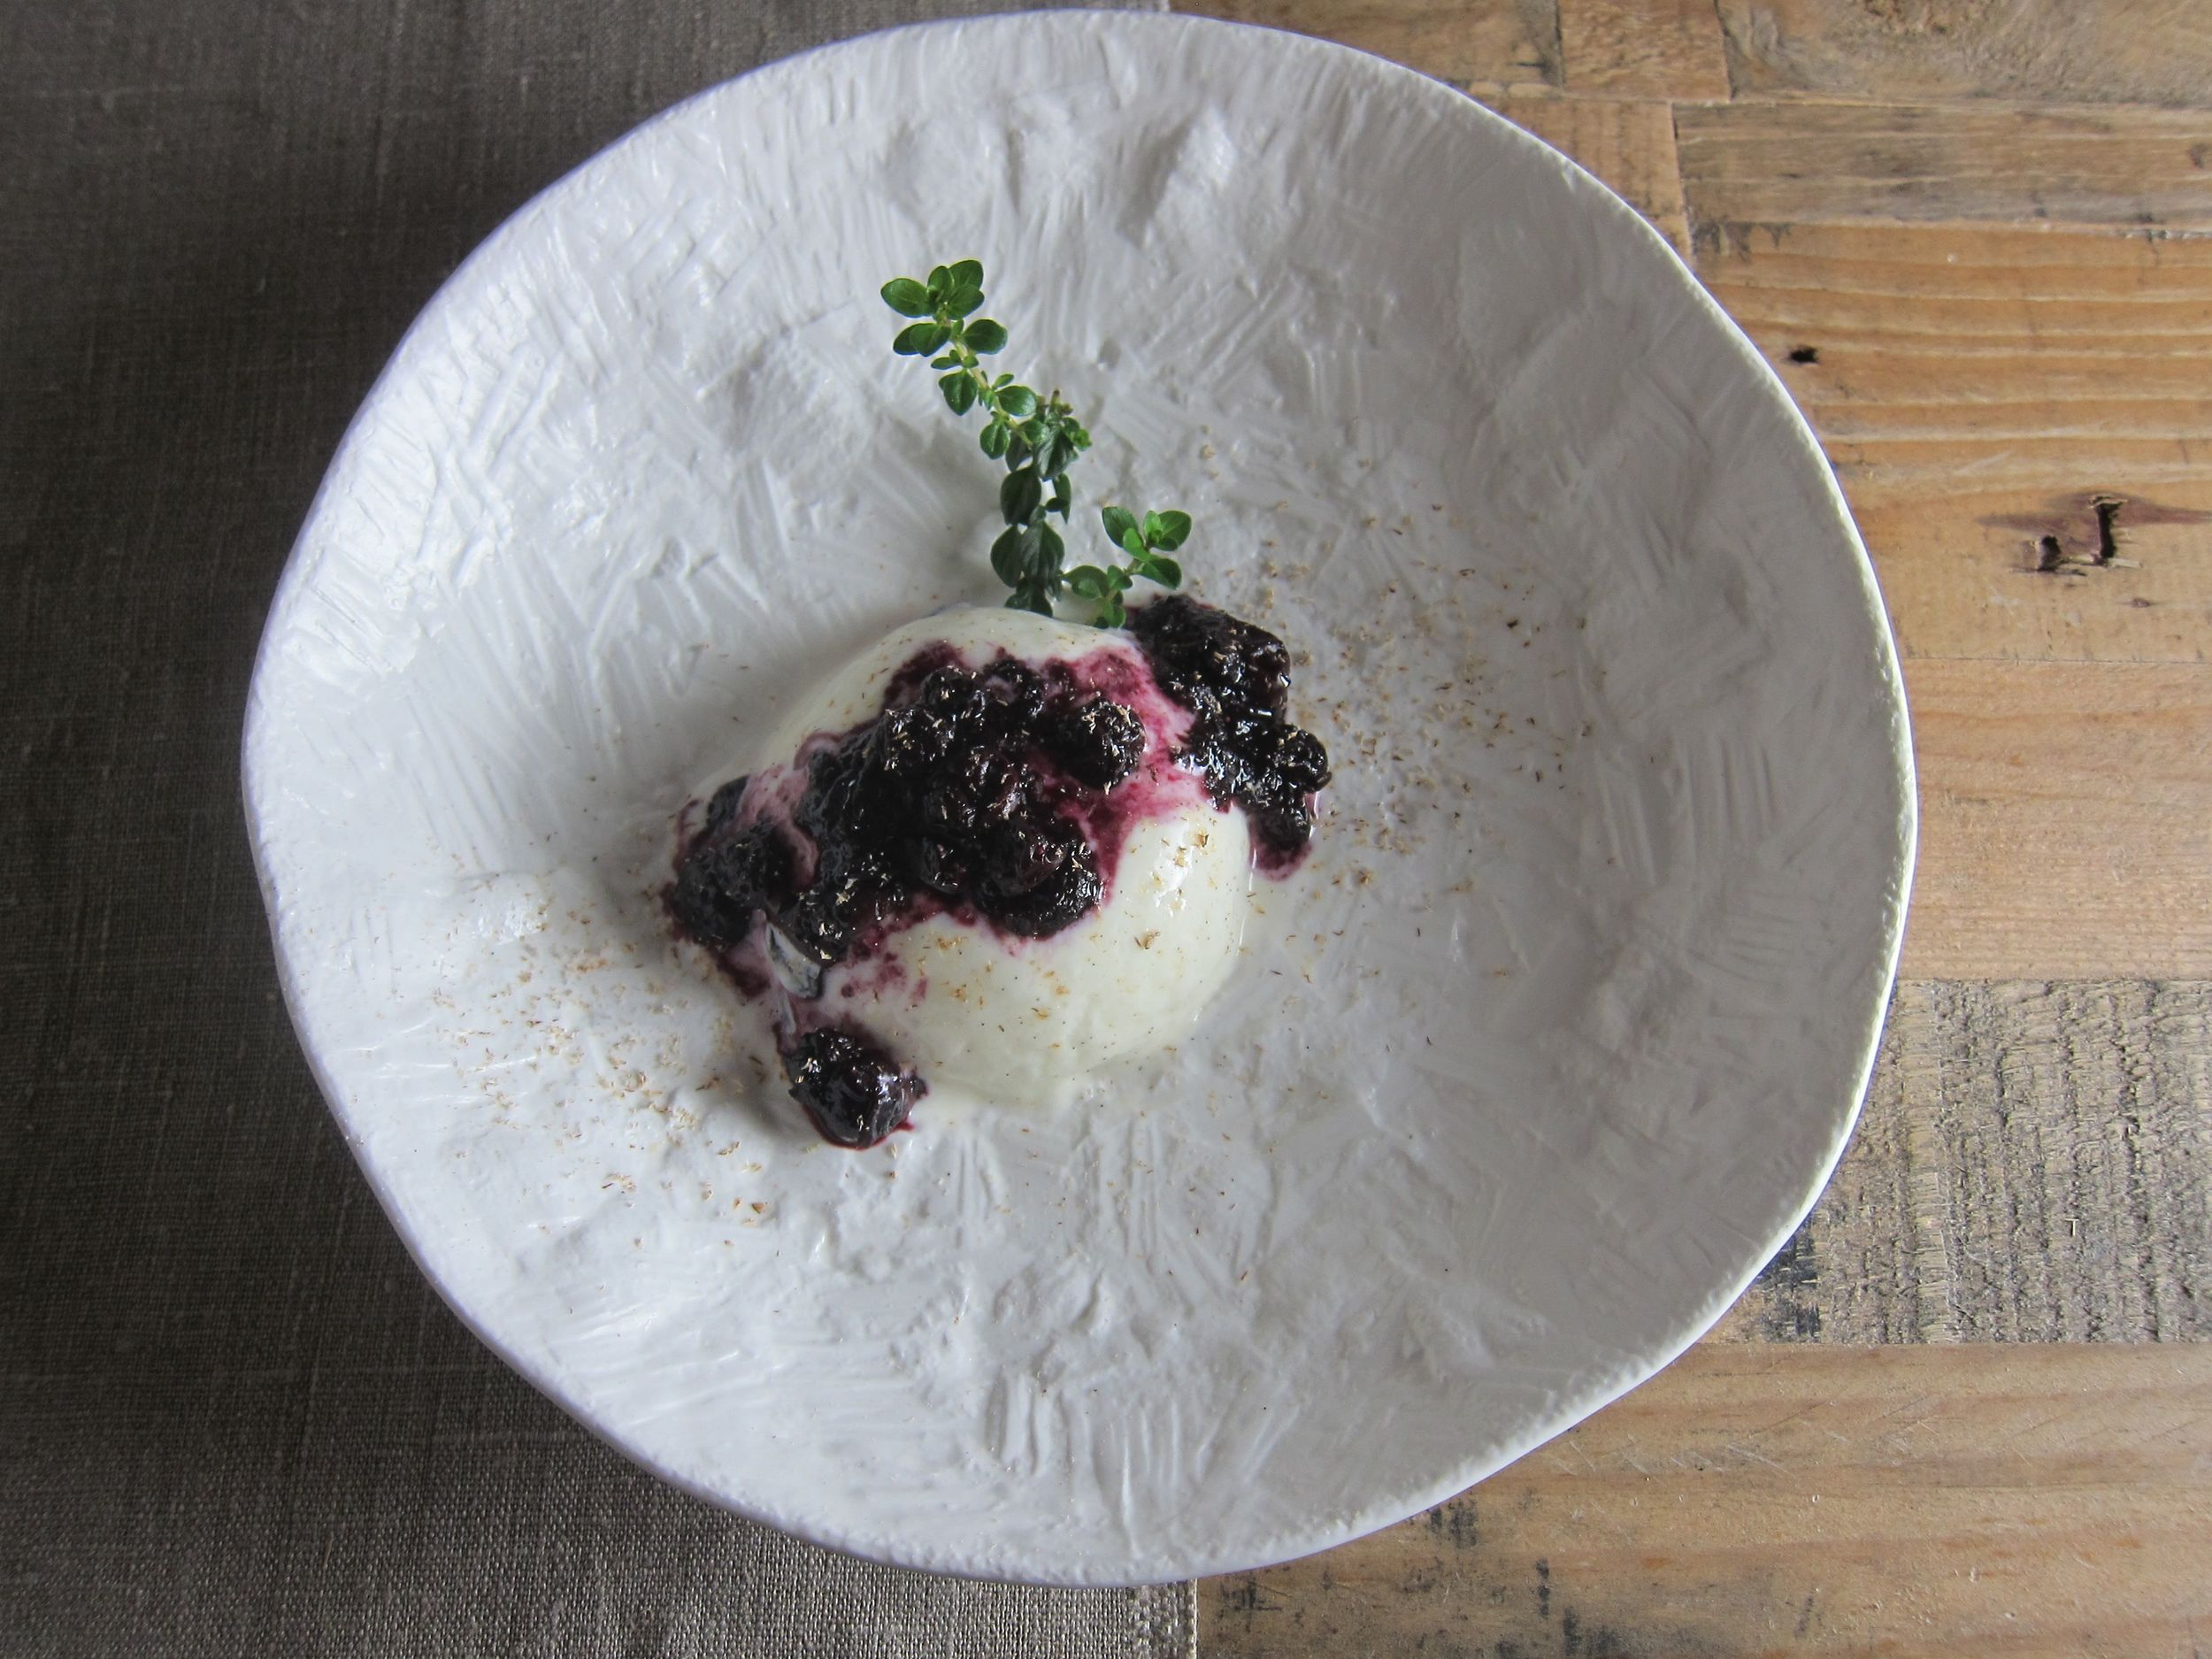 Panna cotta variation: Blueberry compote and grated nutmeg.